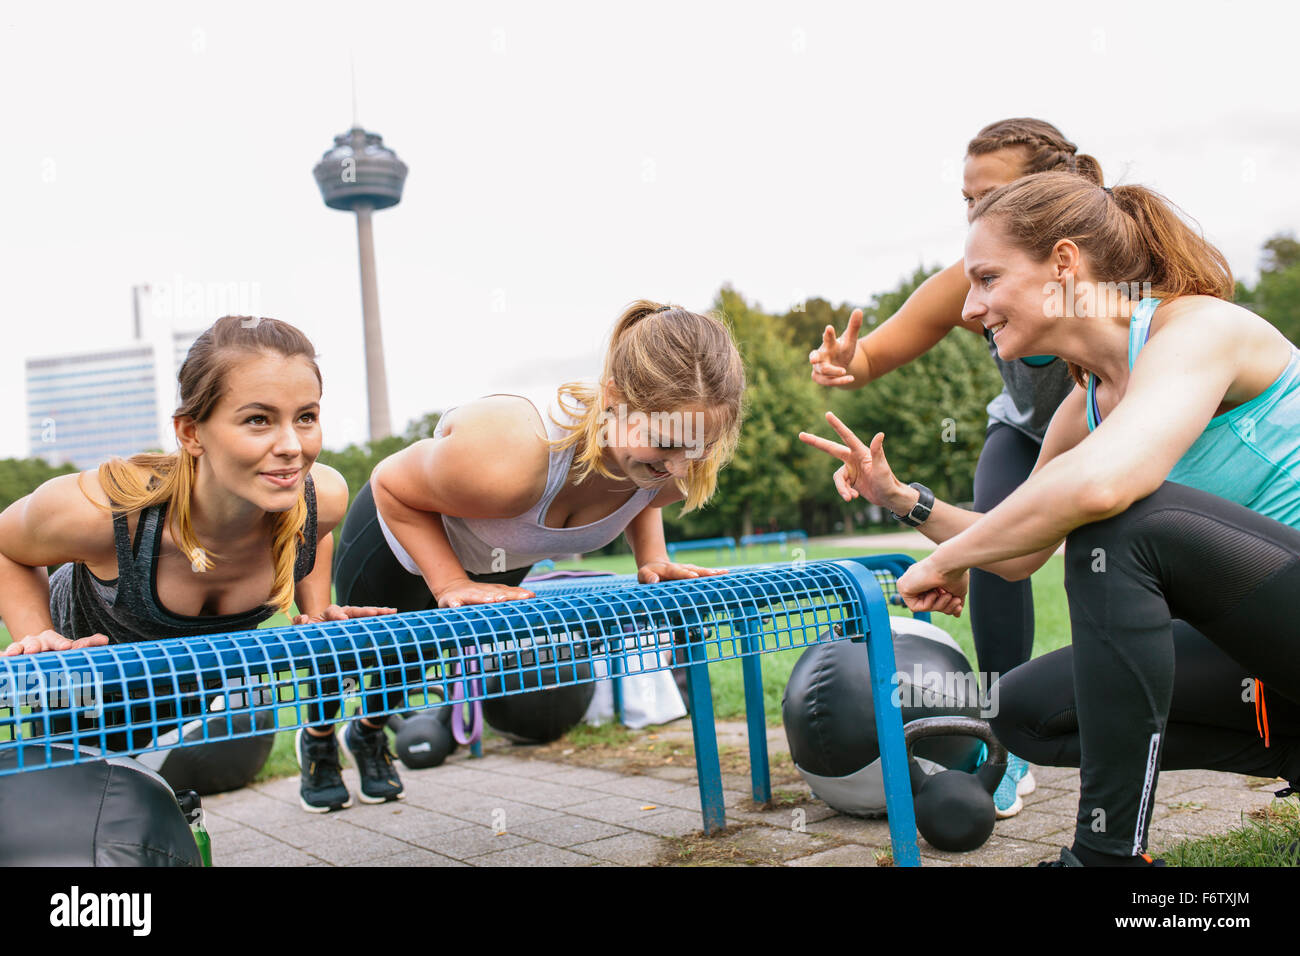 Four women having an outdoor boot camp workout Stock Photo